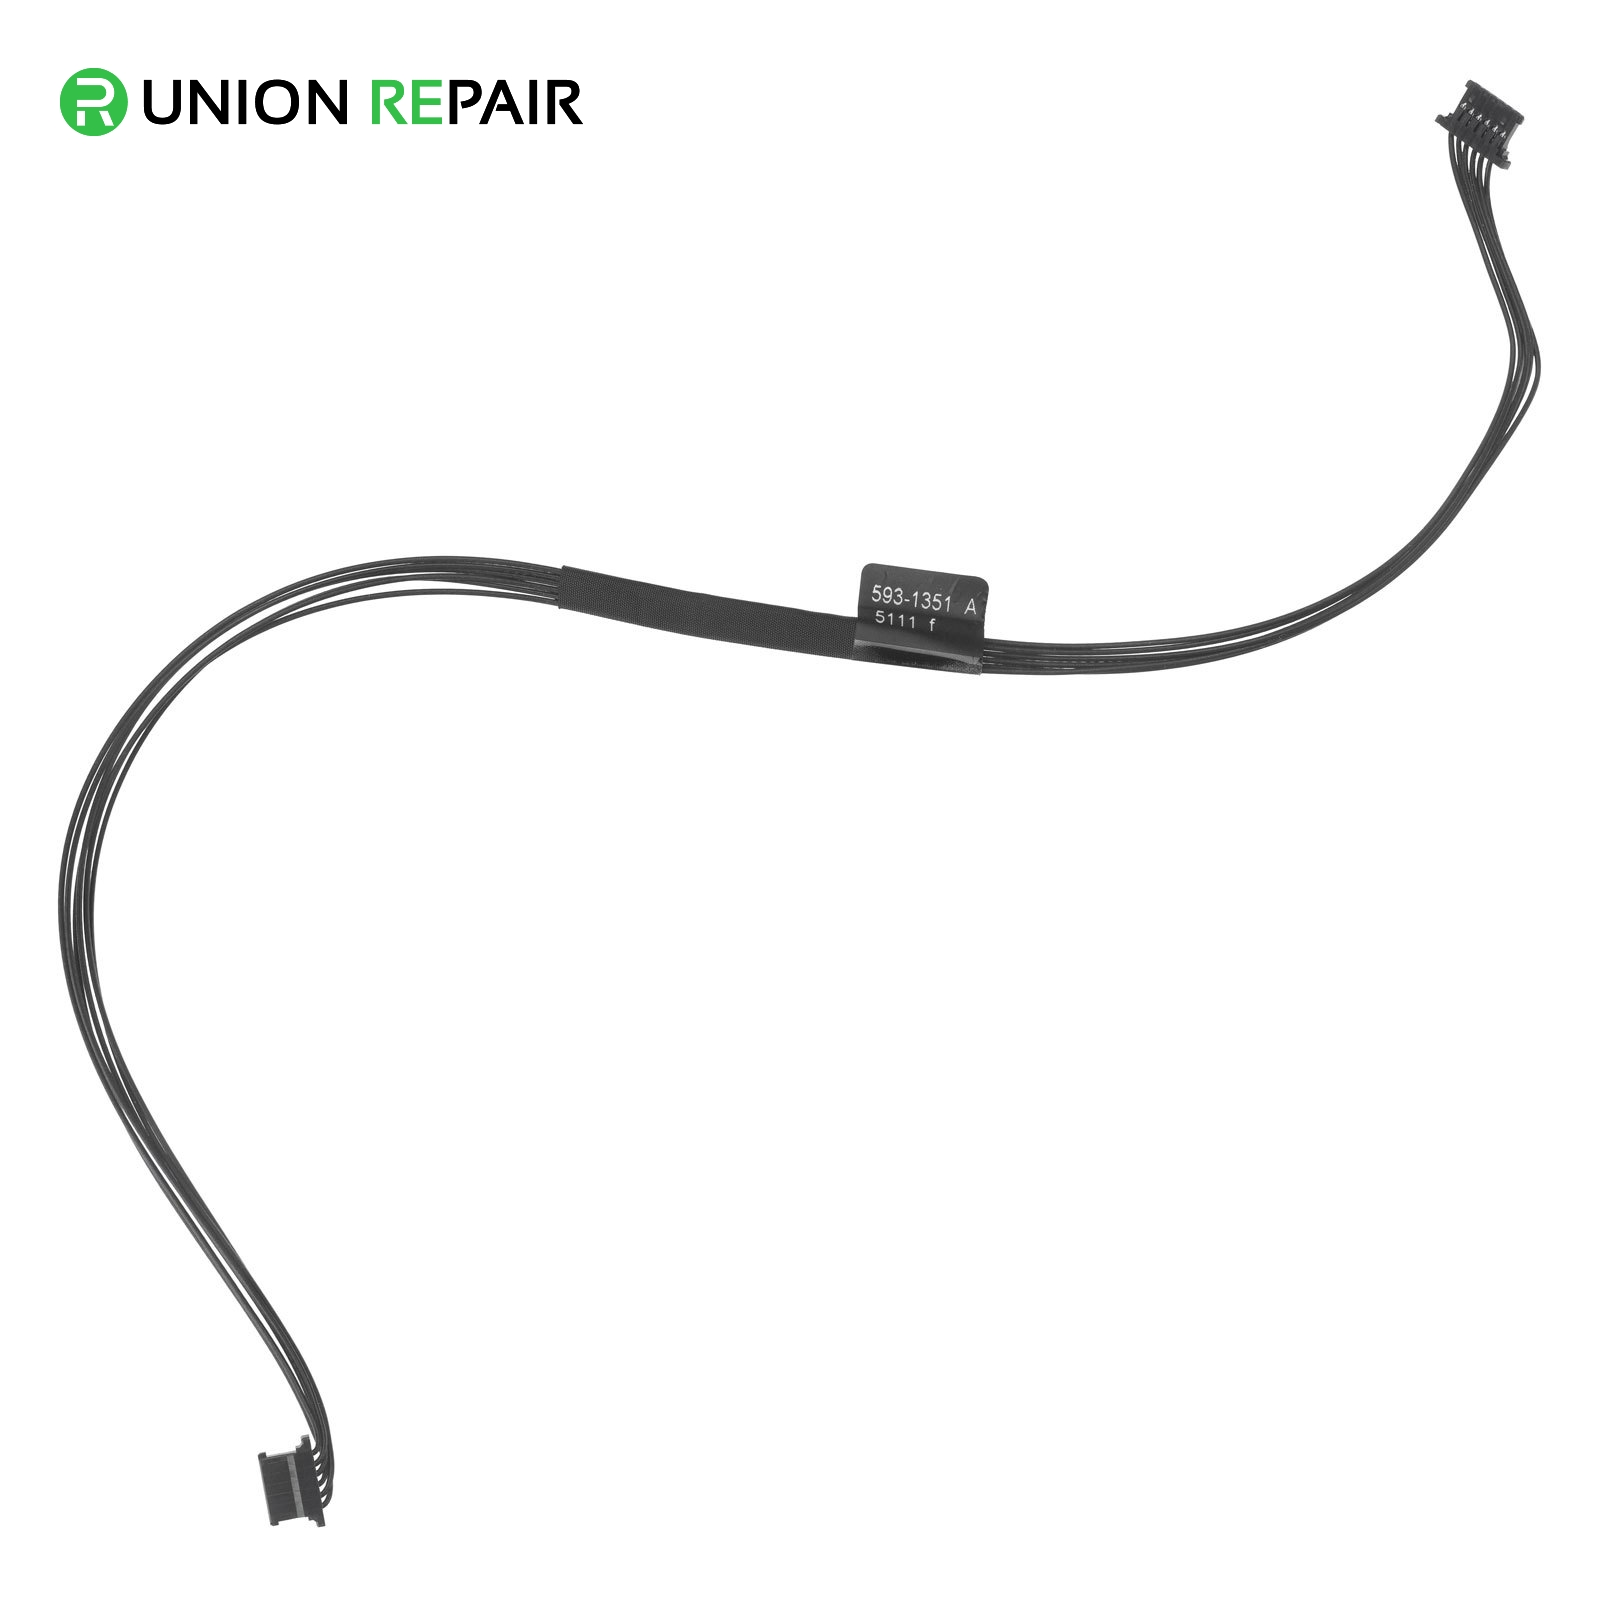 """DisplayPort Power Cable for iMac 21.5"""" A1311 (Mid 2011 - Late 2011)"""